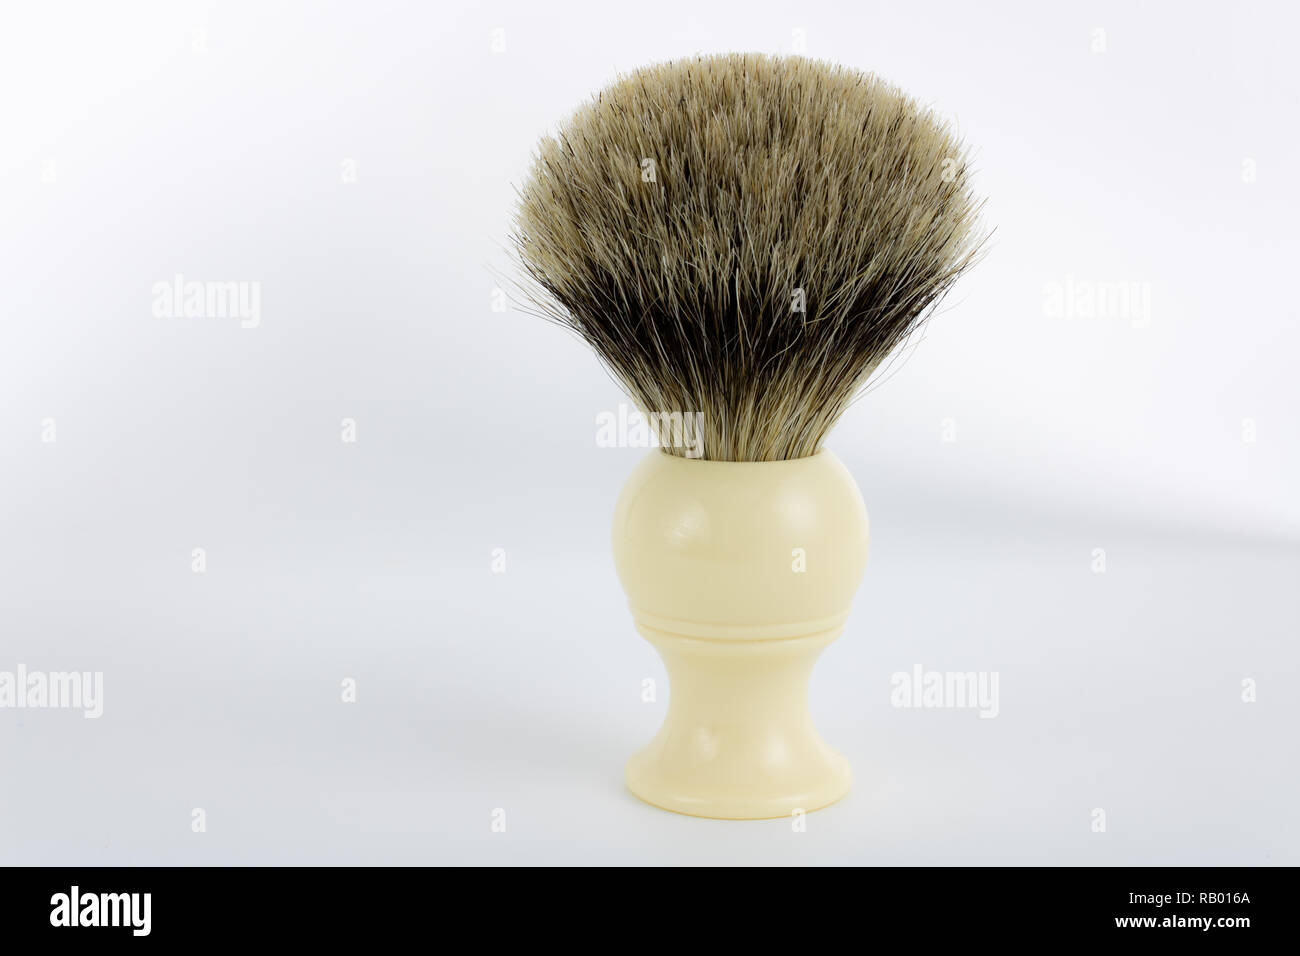 Classic hand-made pure badger shaving brush on white background